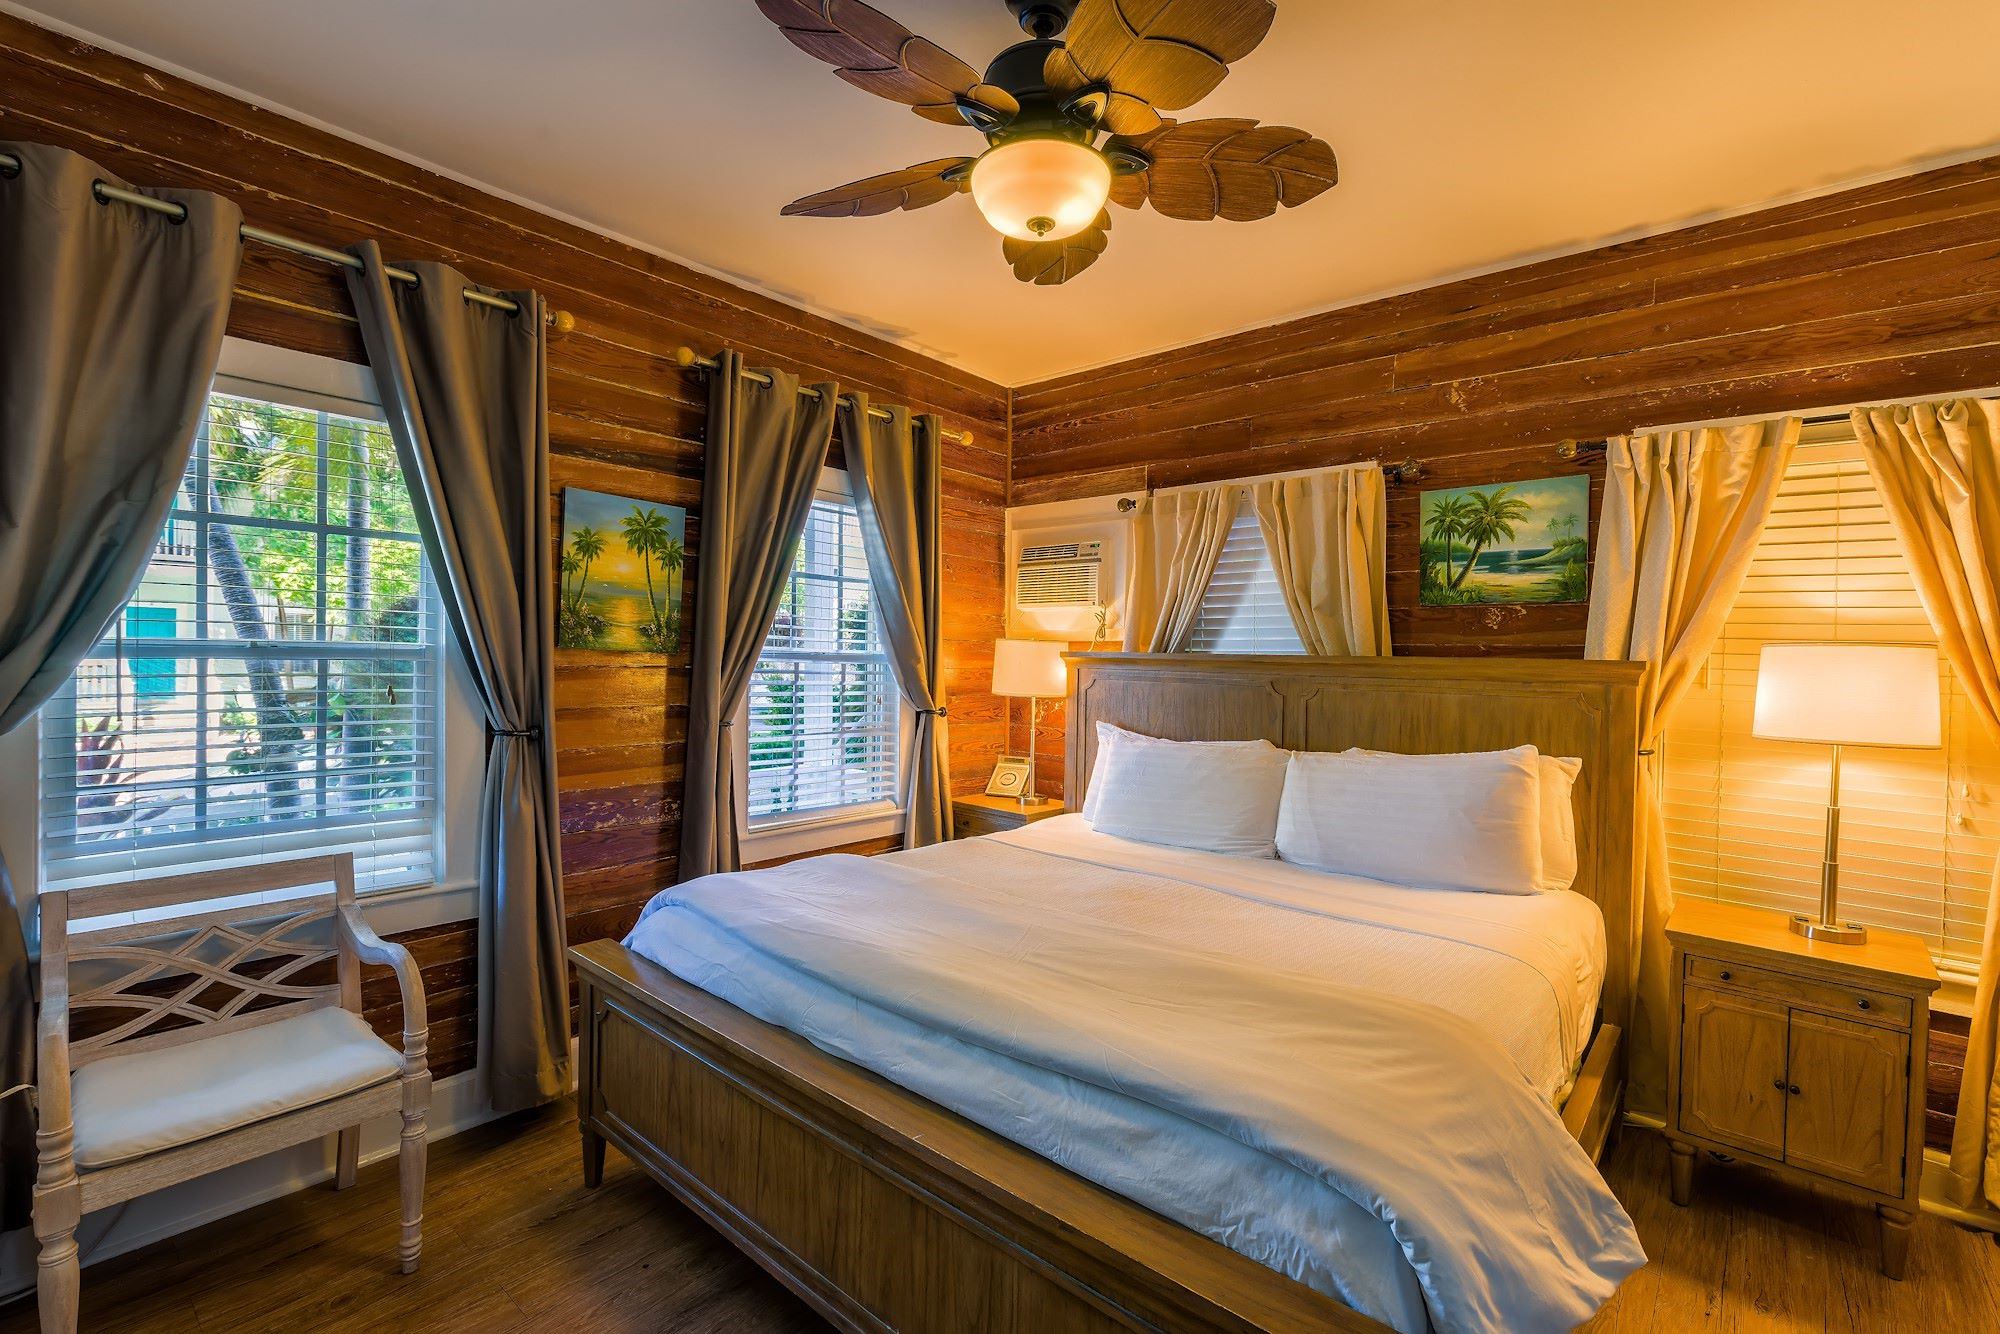 Deluxe King Room with Porch in Key West